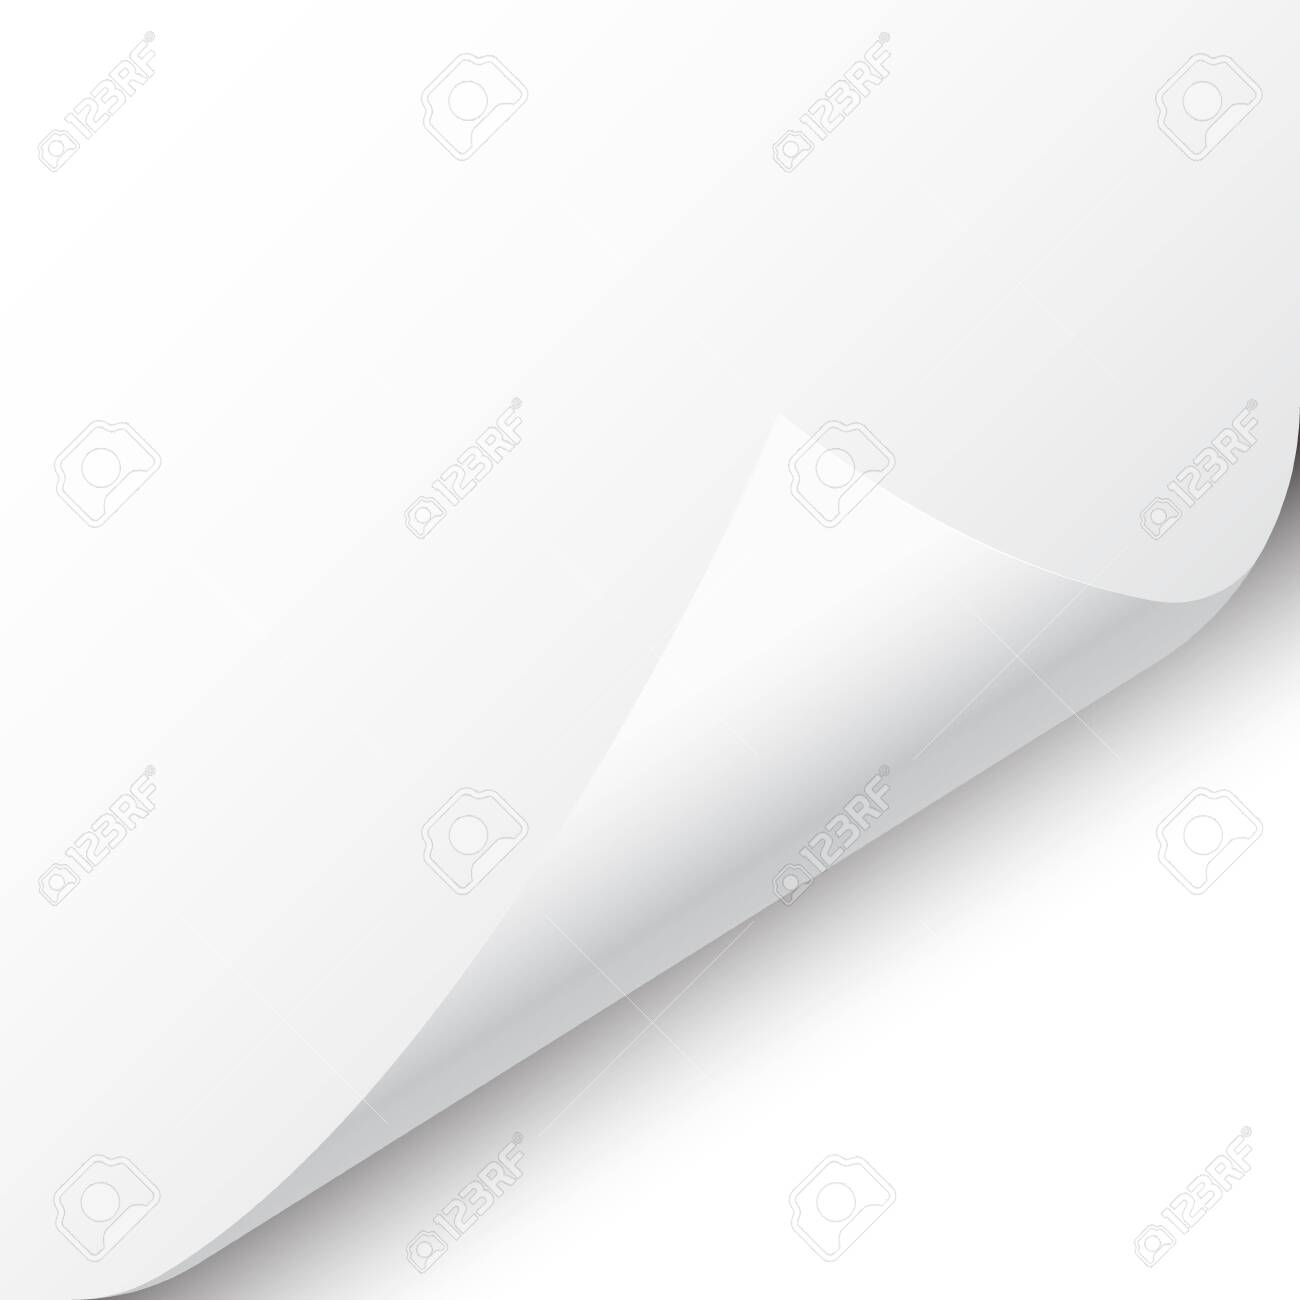 Curled page corner with shadow on white background. Blank sheet of paper. Vector illustration. - 126494328